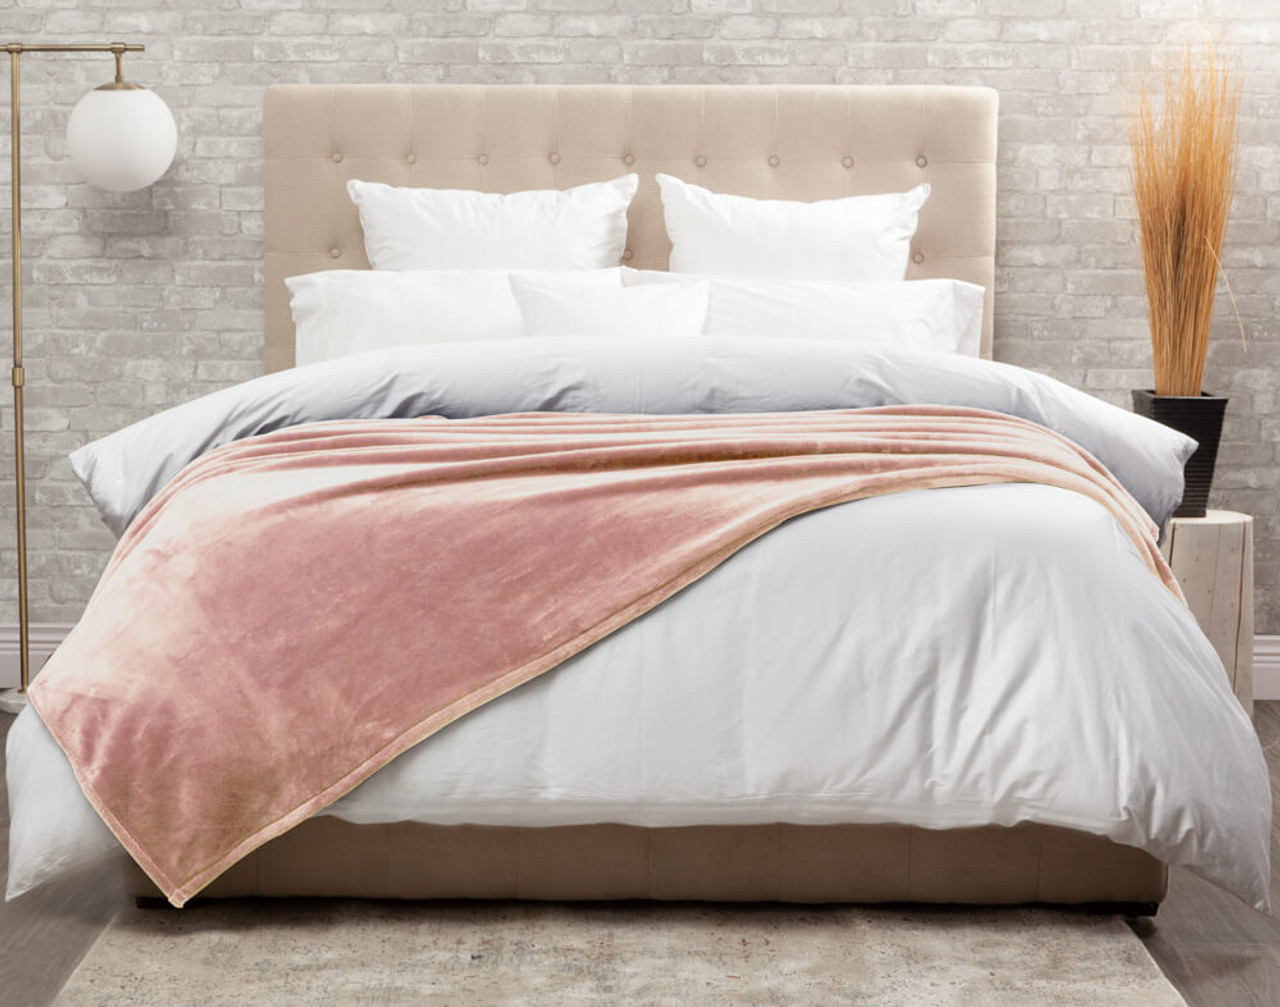 The Cashmere Touch Fleece Blanket pictured in Rose Smoke, a pale pastel pink.